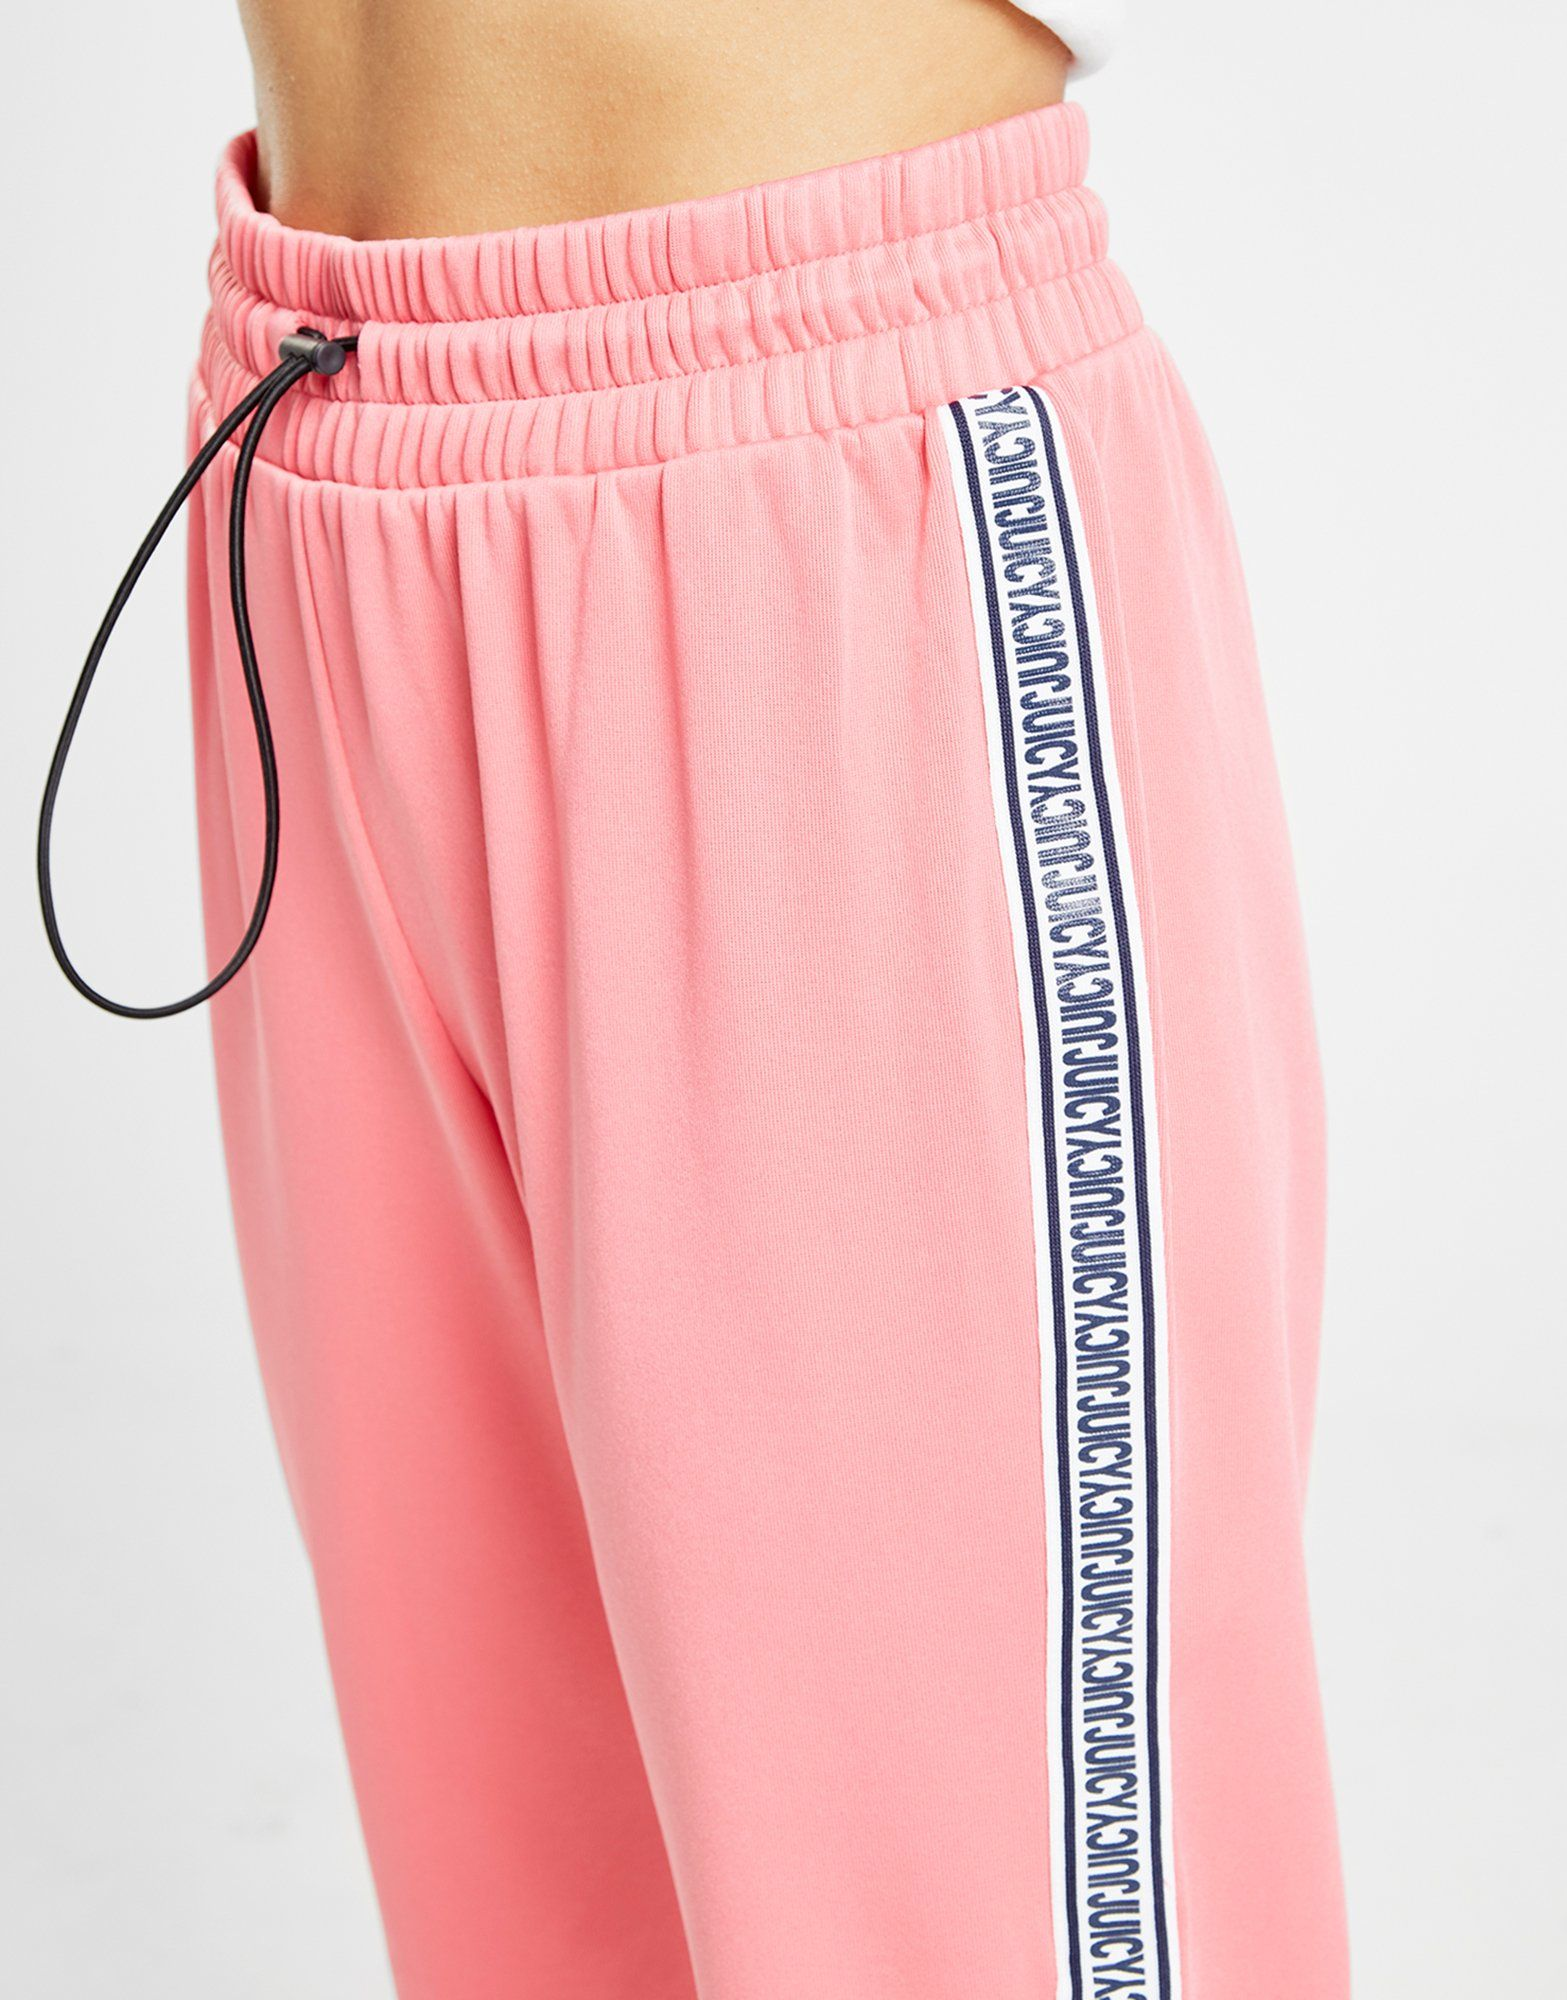 Juicy by Juicy Couture Tape Wide Leg Track Pants